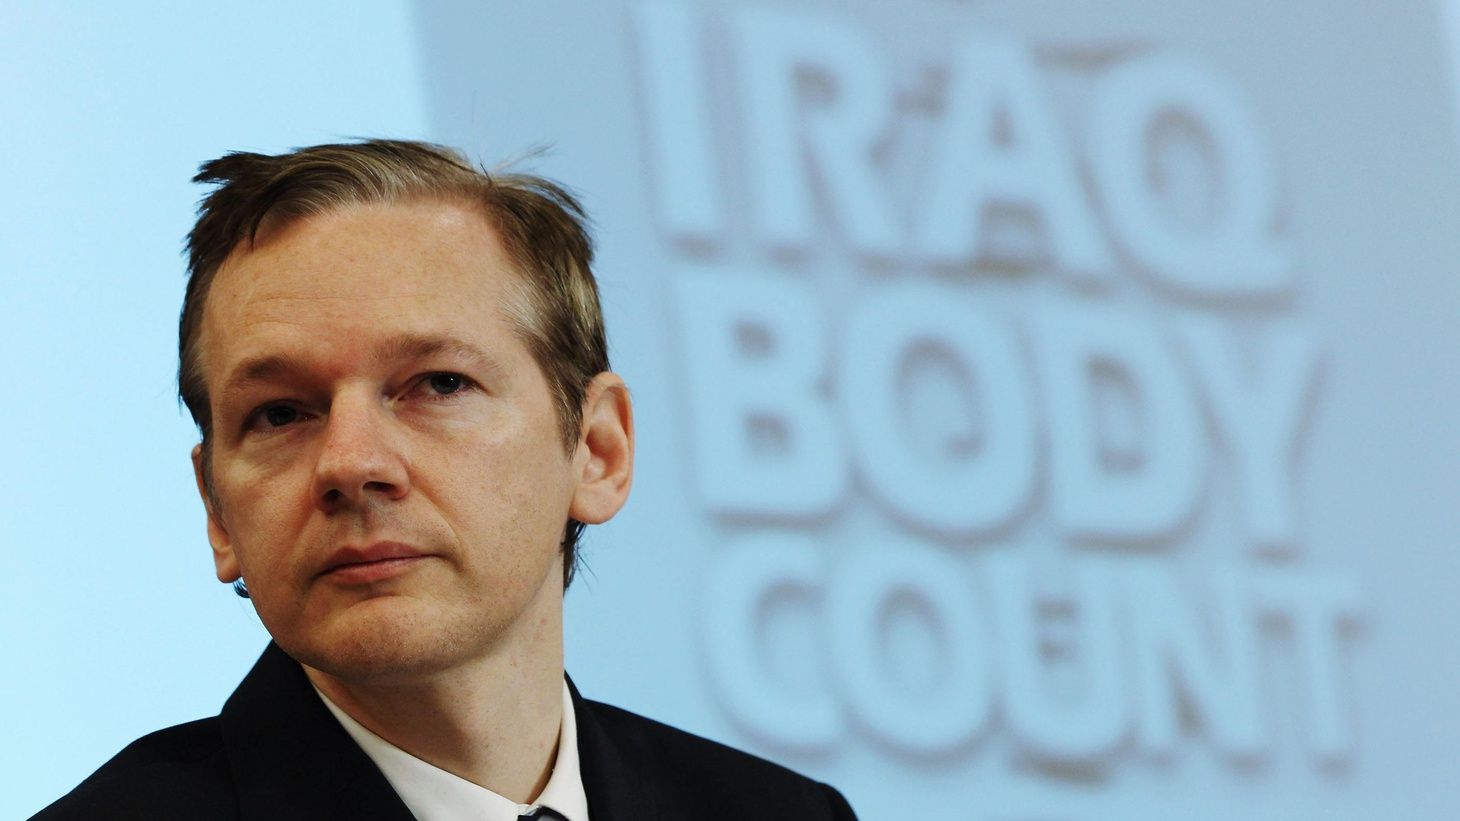 WikiLeaks has caused another international sensation by releasing classified documents about the Iraq war. We ask what we know now that we didn't know before. Are WikiLeaks and its whistle-blowers a curse or a blessing? Also, Iran begins to fuel its nuclear reactor, and new revelations about BP.